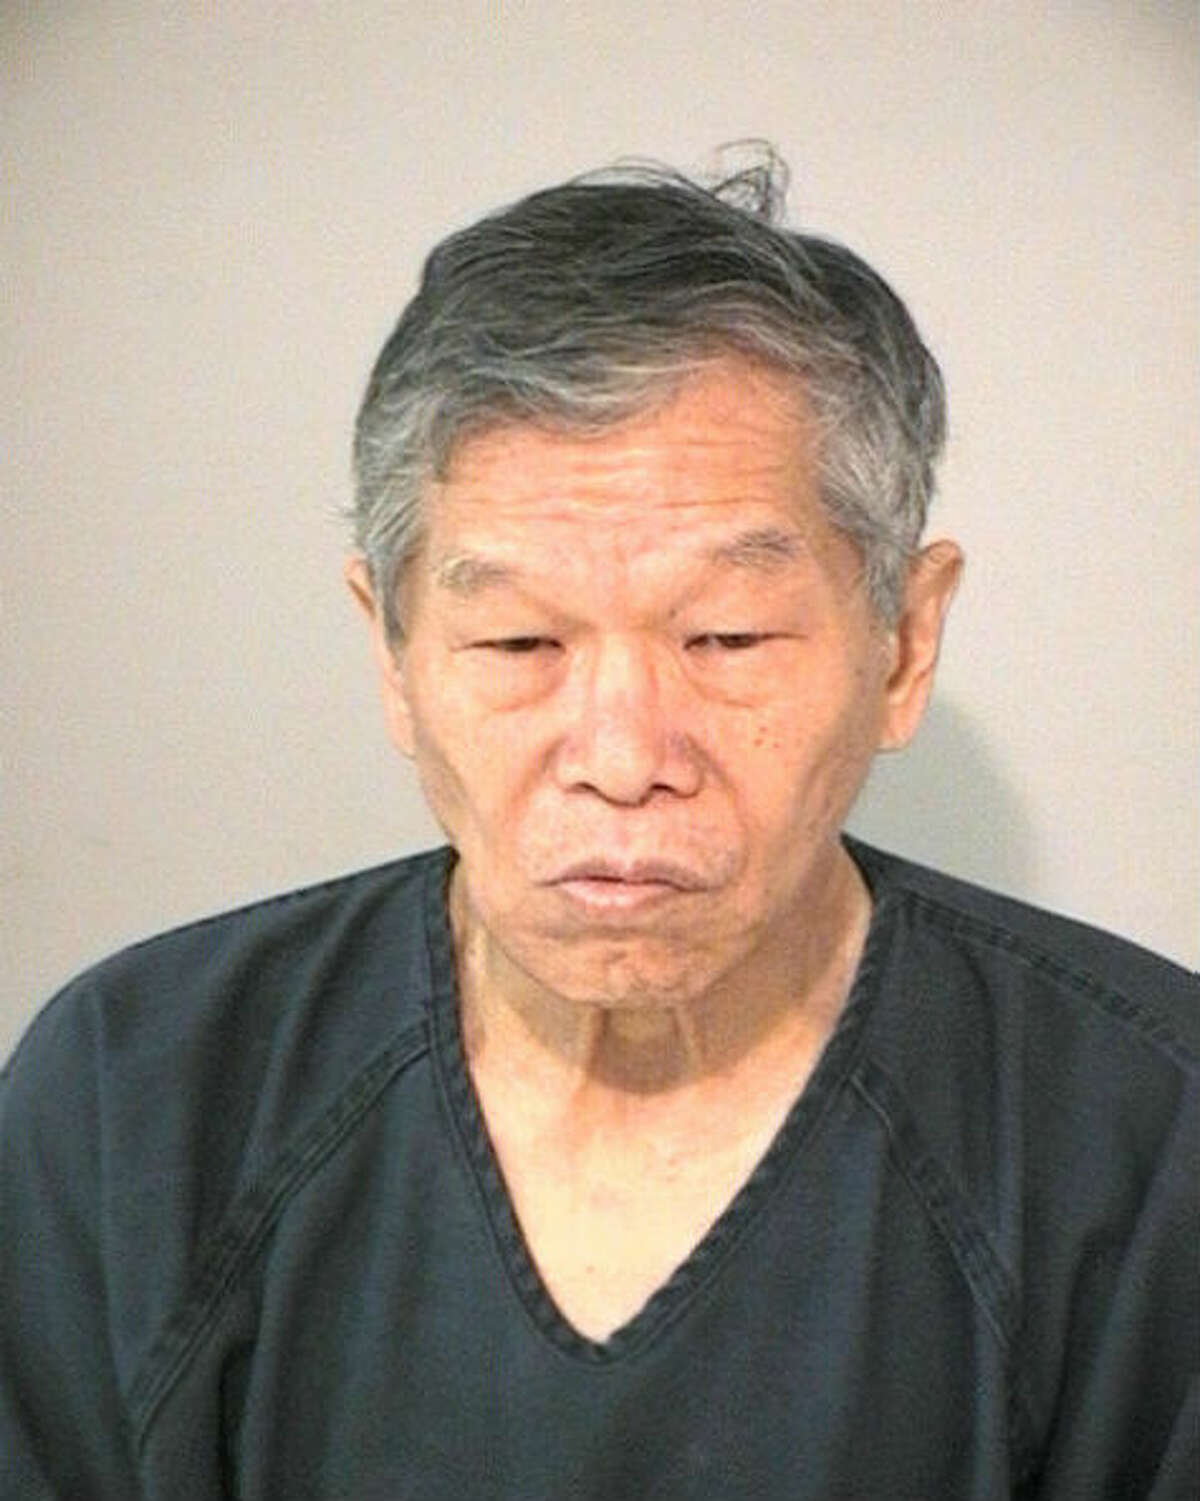 Sai-Shin Chow, 66, was arrested and charged with promotion of prostitution during a bust of the Oasis Foot Reflexology spa in Cinco Ranch.